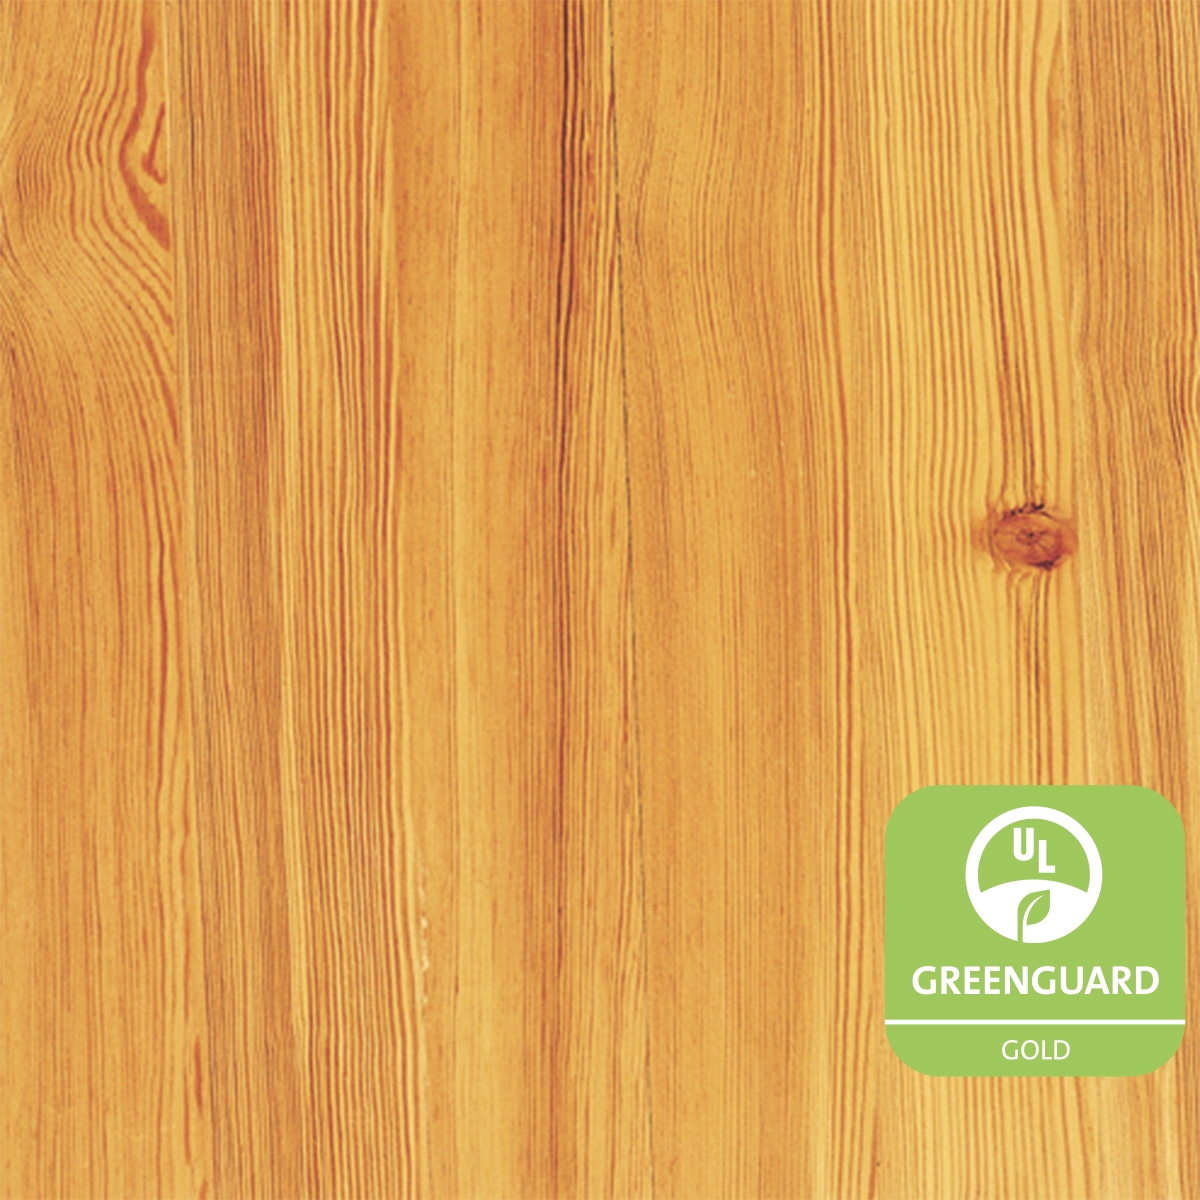 Pioneer Millworks reclaimed wood--Heart Pine--Premium Select Vertical Grain